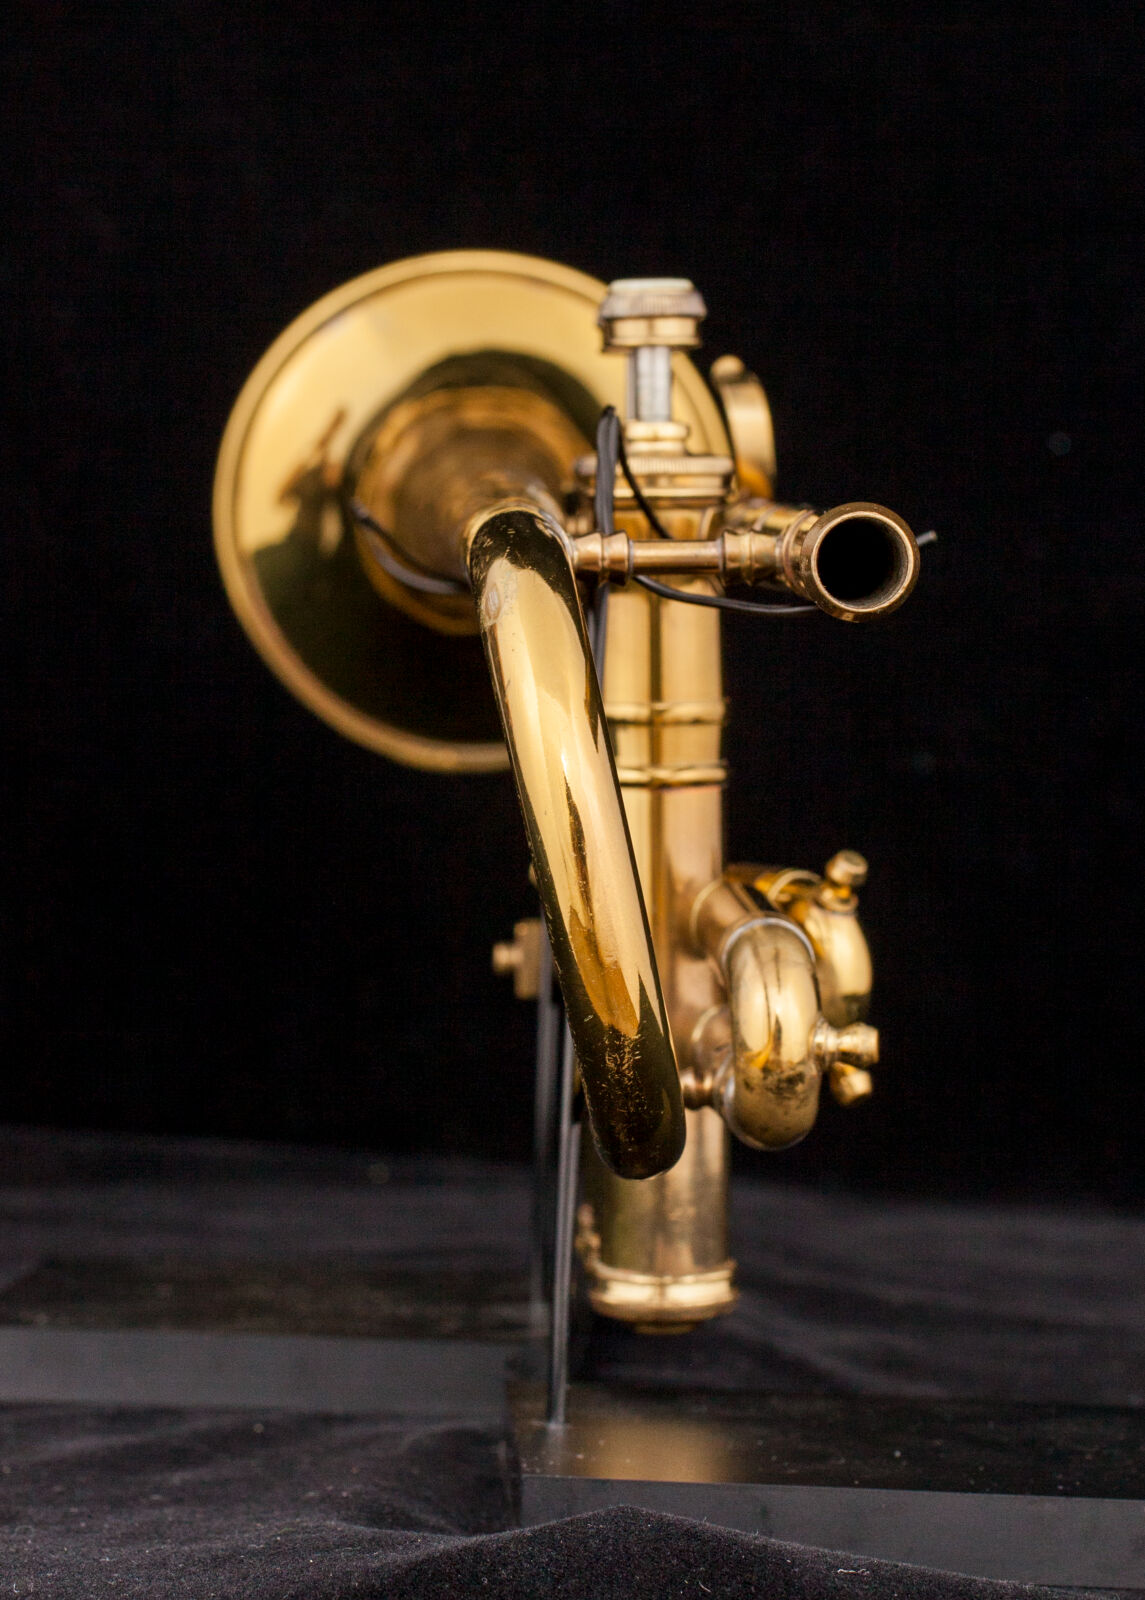 Trumpet | Digital Collections at the University of Illinois